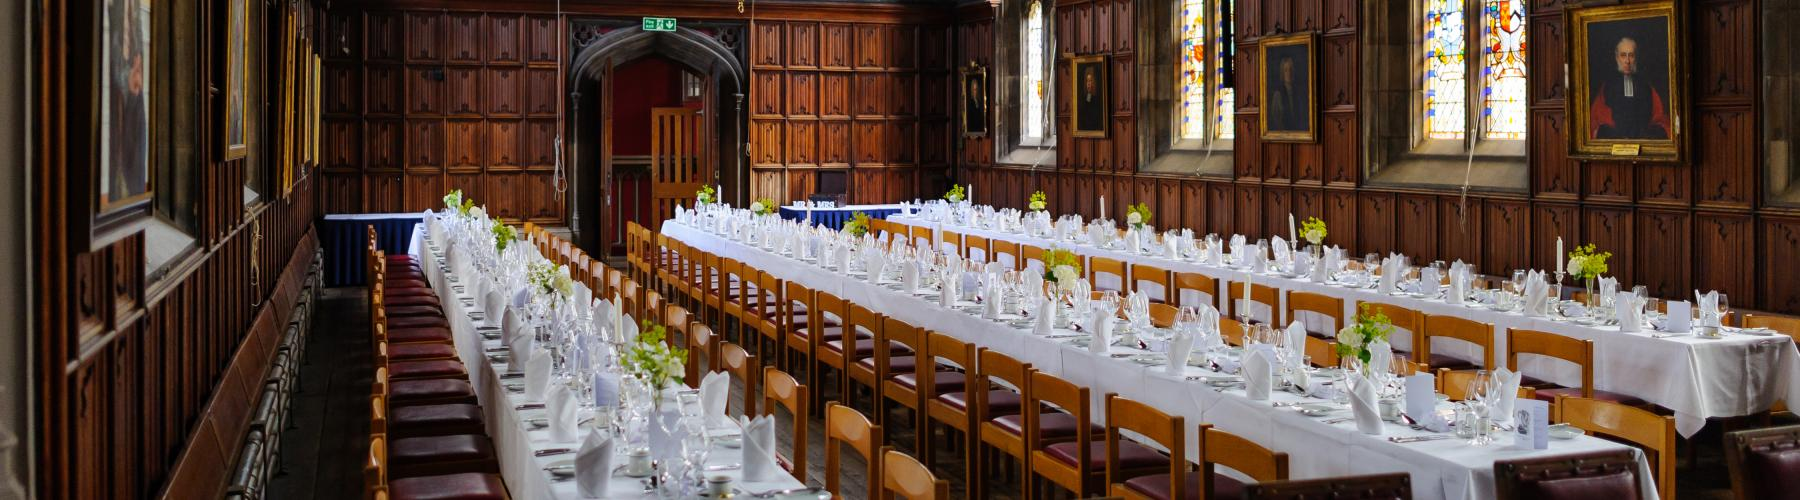 Tables in the hall